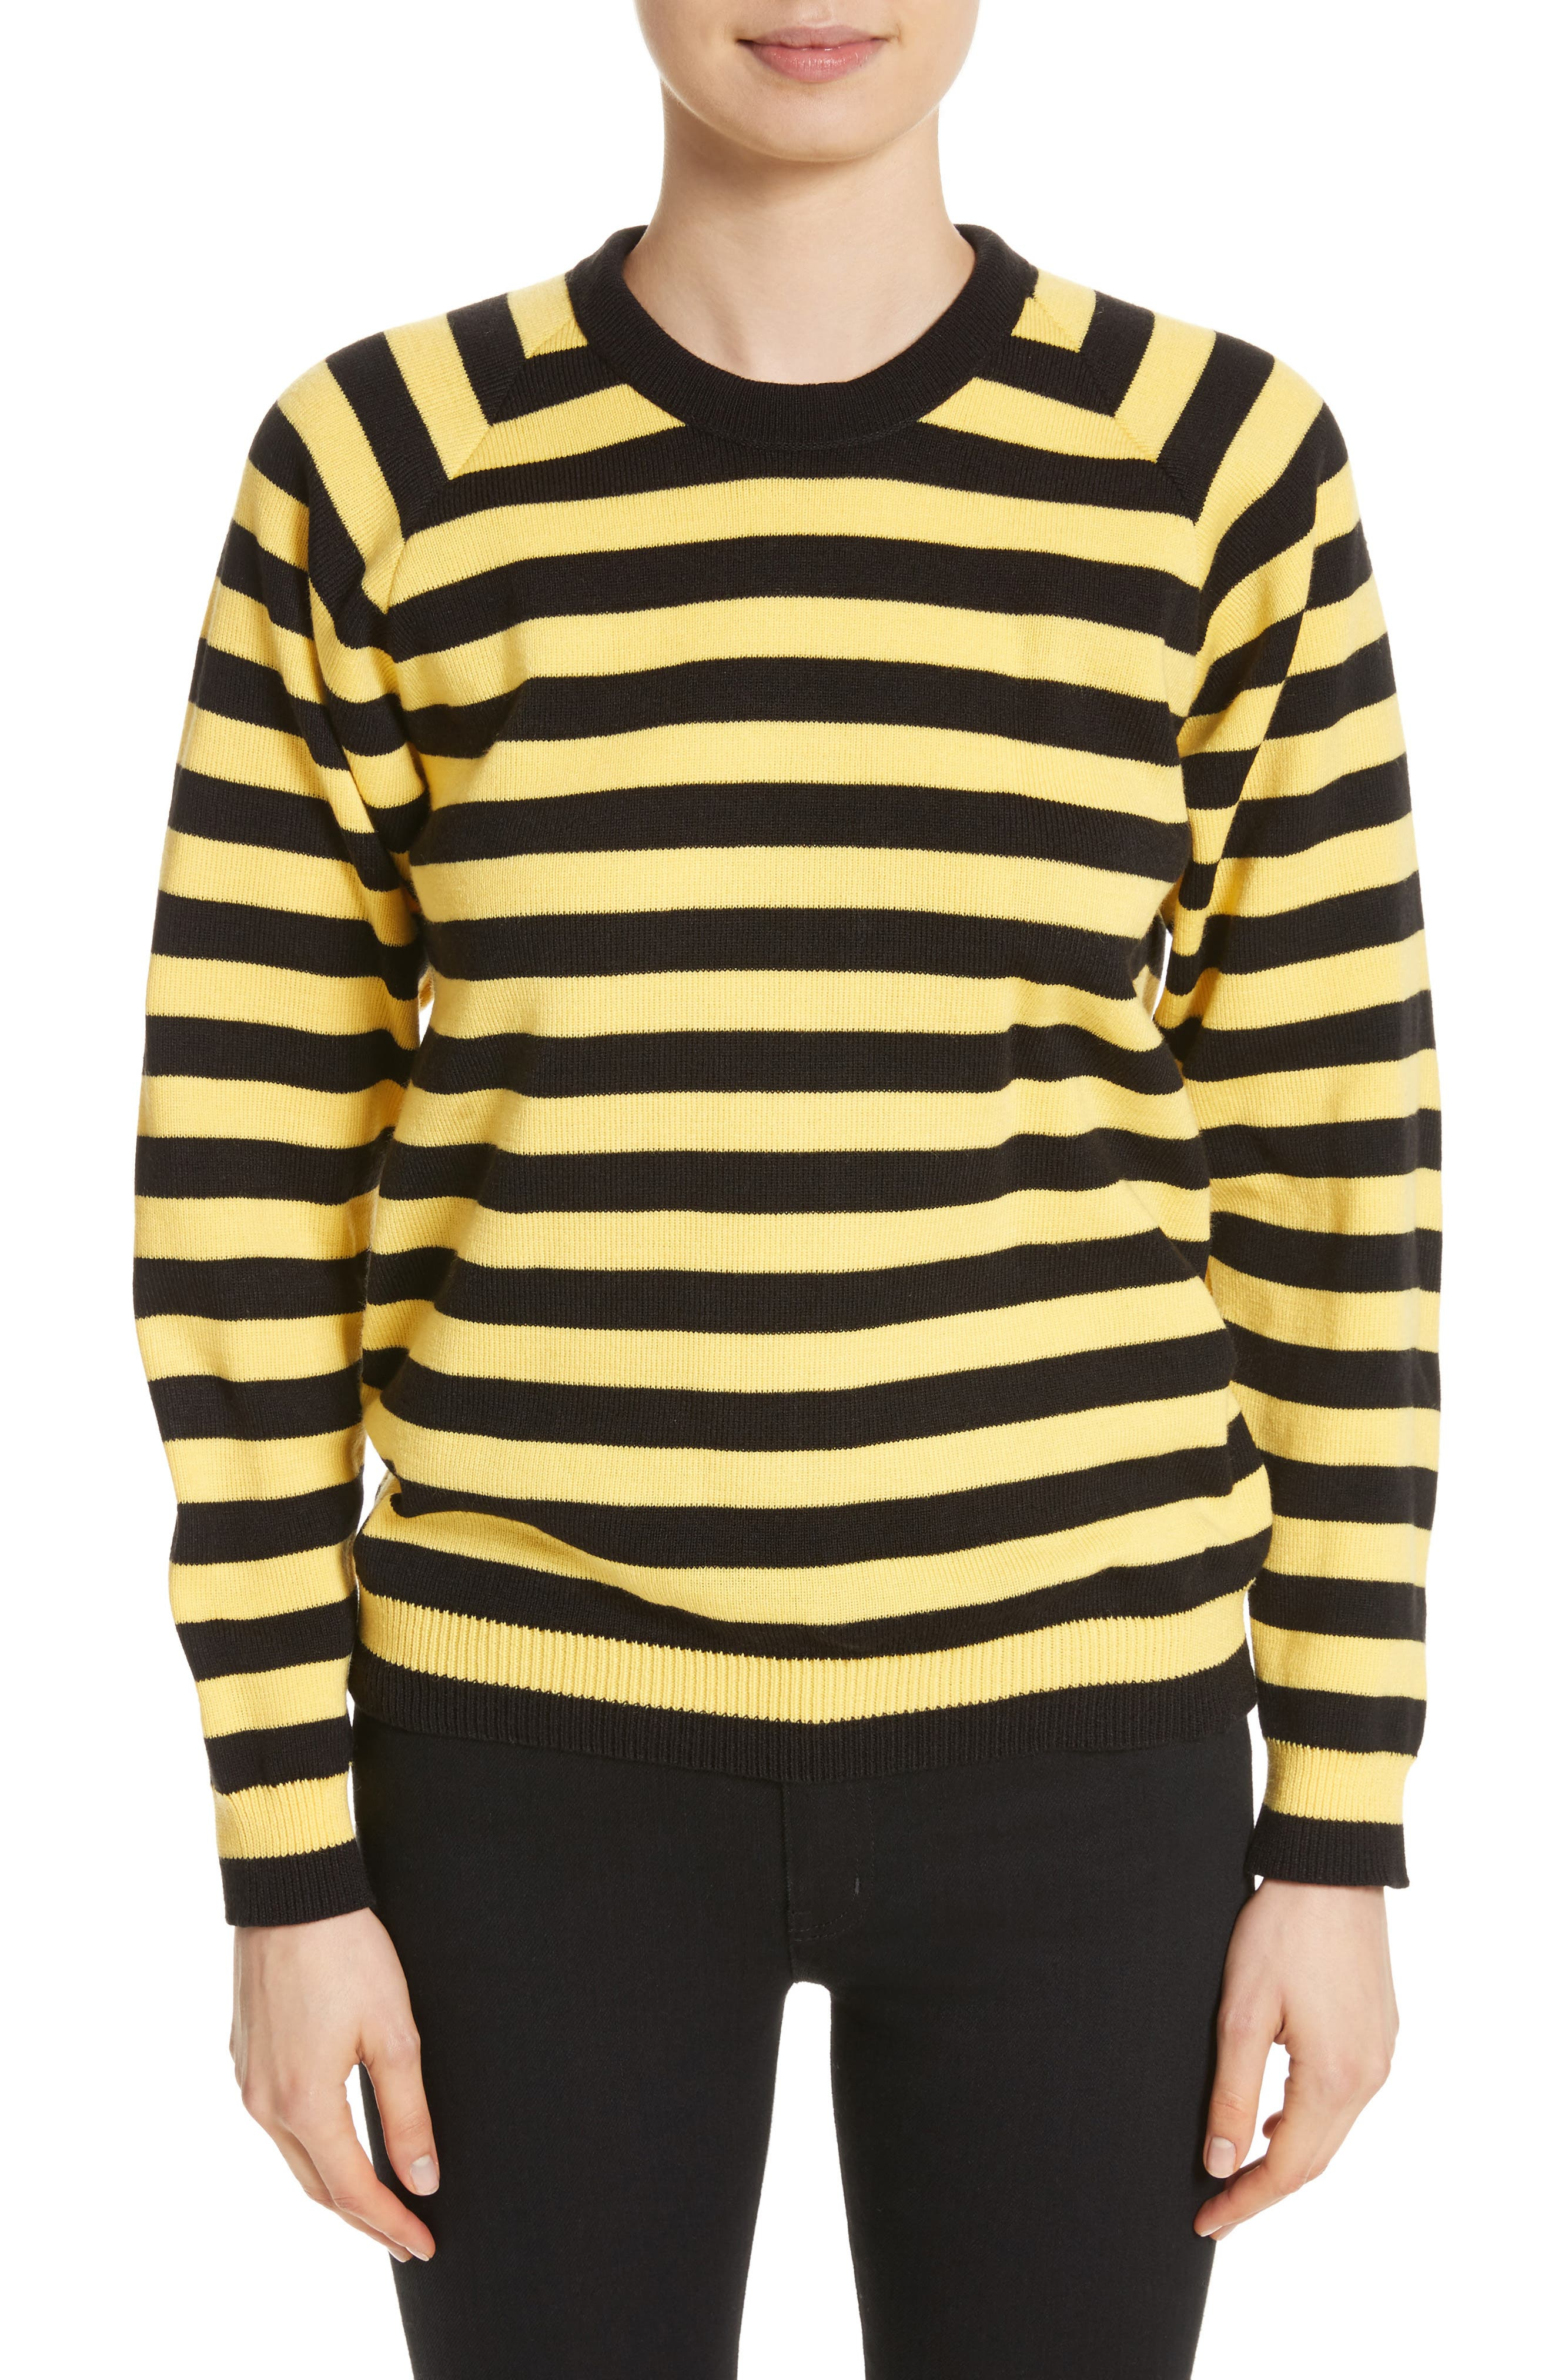 Molly Goddard Bumblebee Stripe Sweater